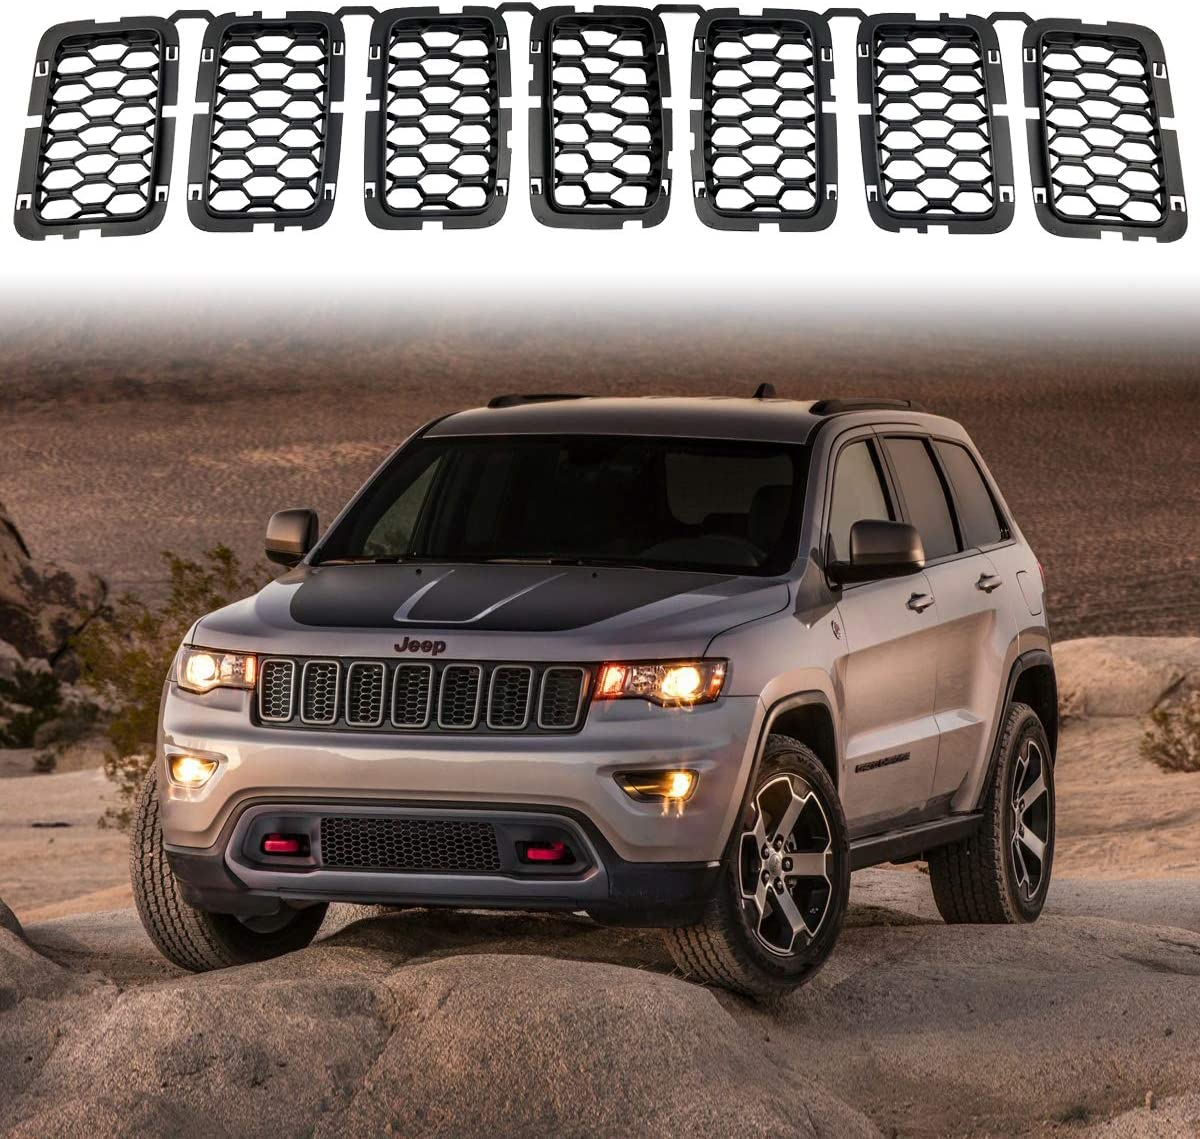 Black Grand Cherokee >> Latest Honeycomb Matte Mesh Black Front Grill Inserts Fits Jeep Grand Cherokee 2017 2018 2019 2020 7pc